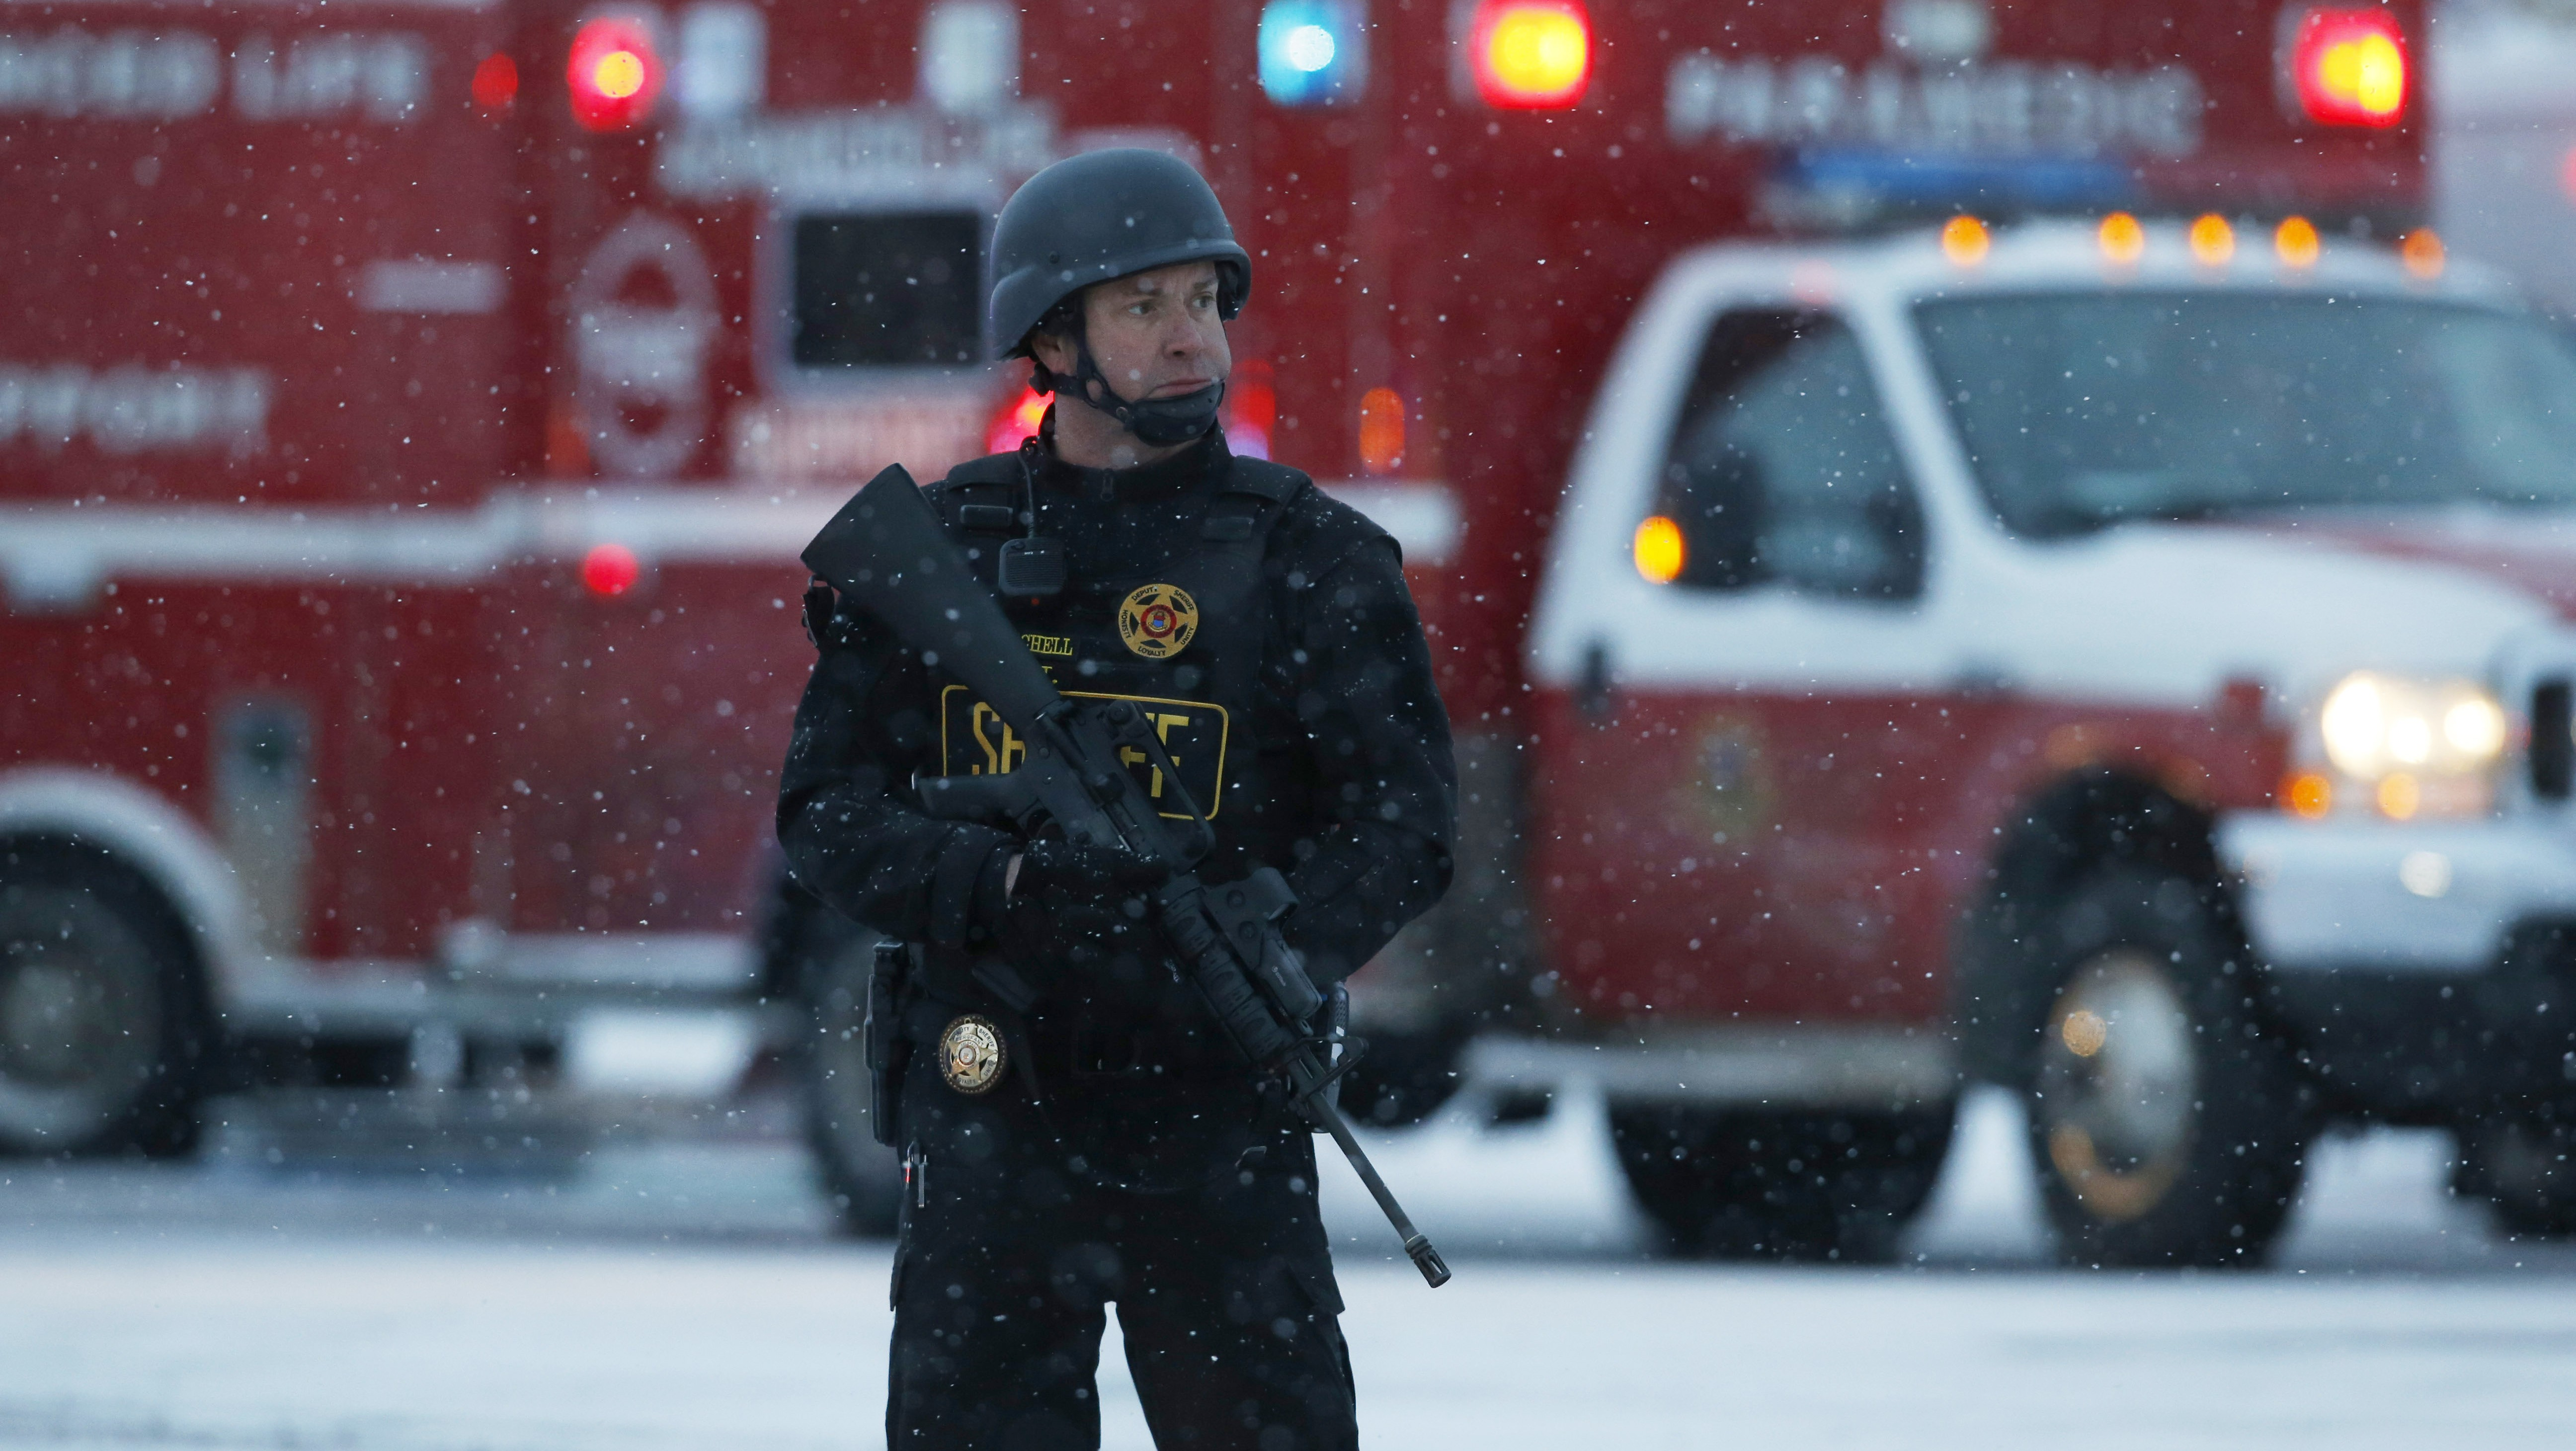 Here's Everything We Know So Far About the Planned Parenthood Shooting in Colorado